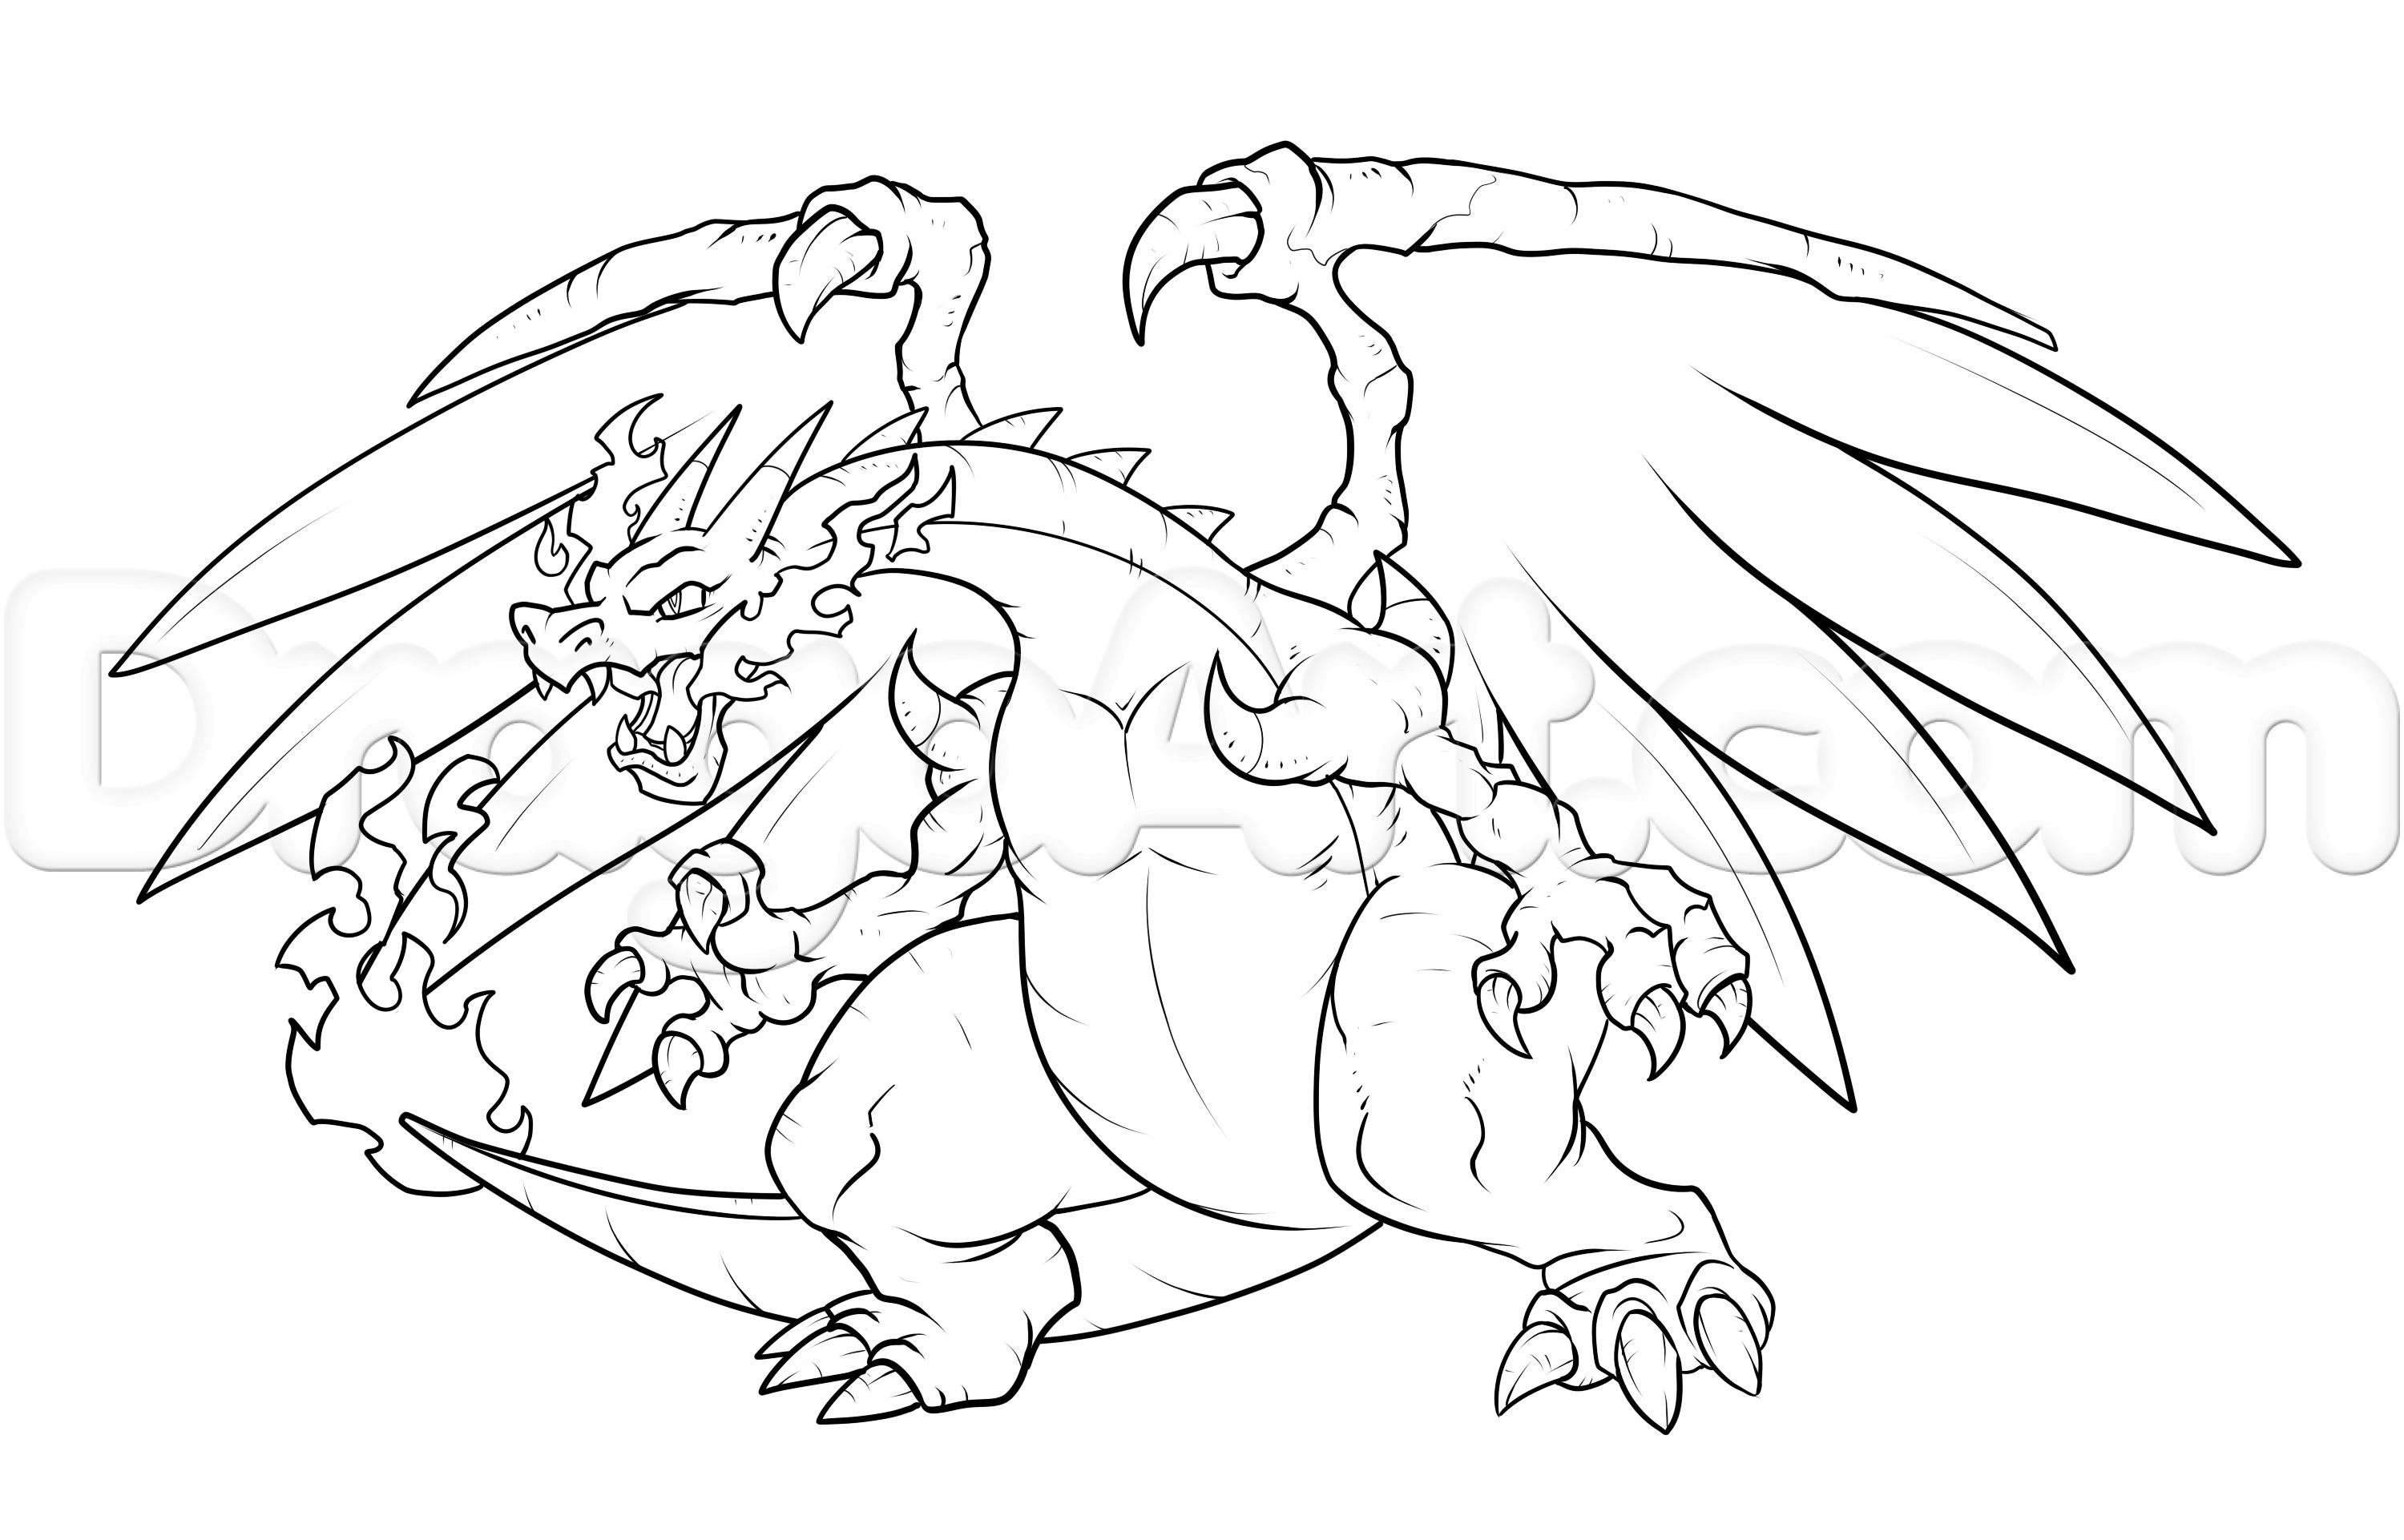 Pokemon Coloring Pages Mega Charizard Ex - Coloring Page